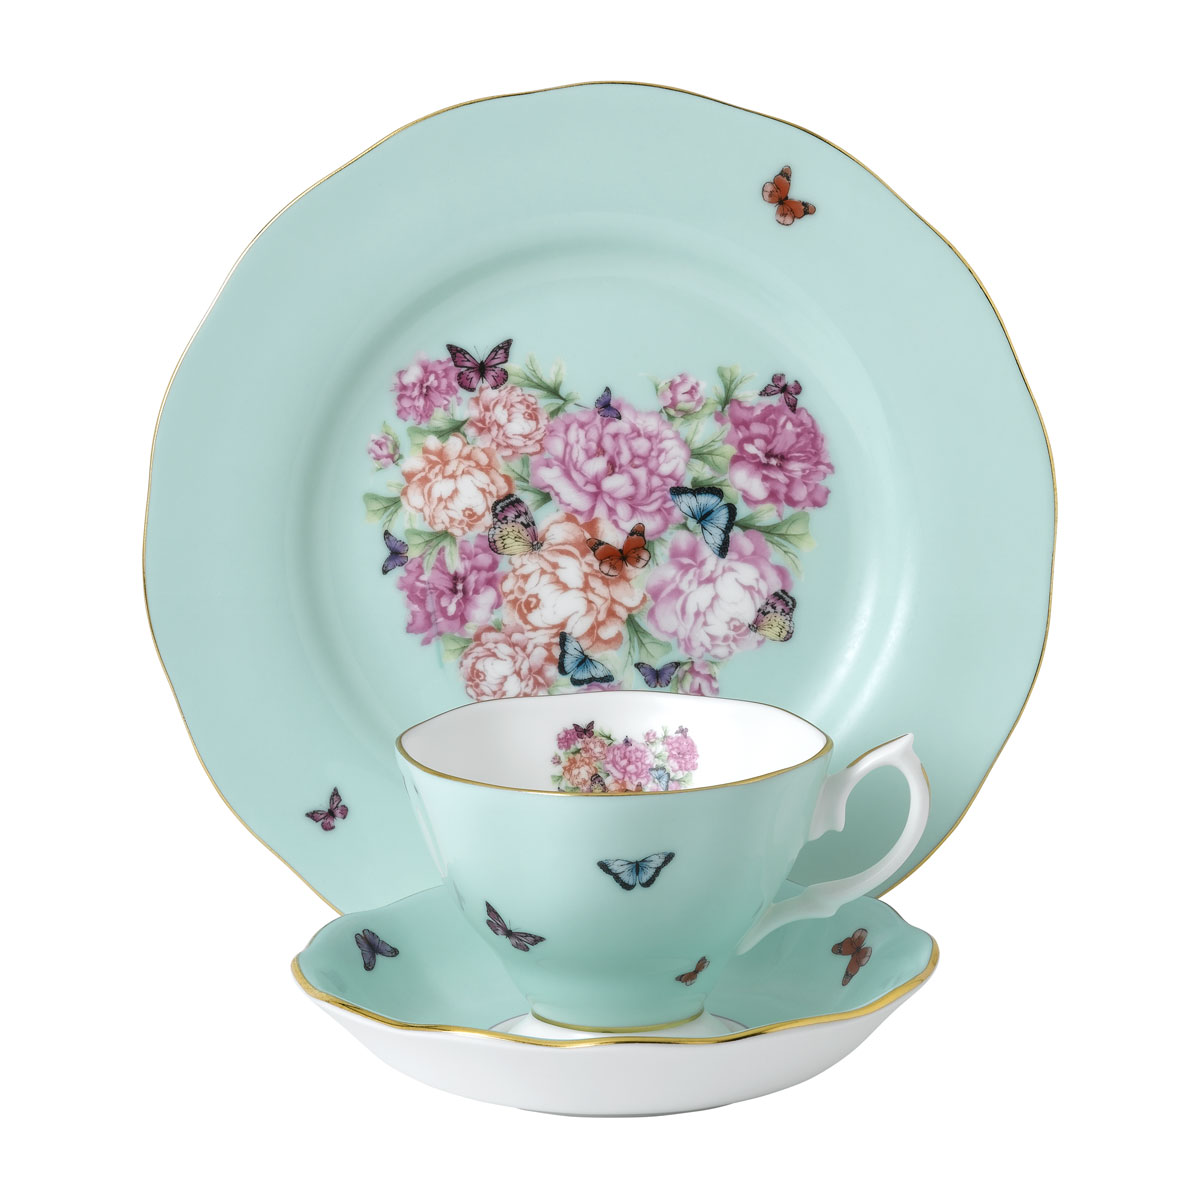 "Royal Albert Miranda Kerr Friendship 3pc Set Teacup, Saucer and Plate 8"" Tranquility, Blue"